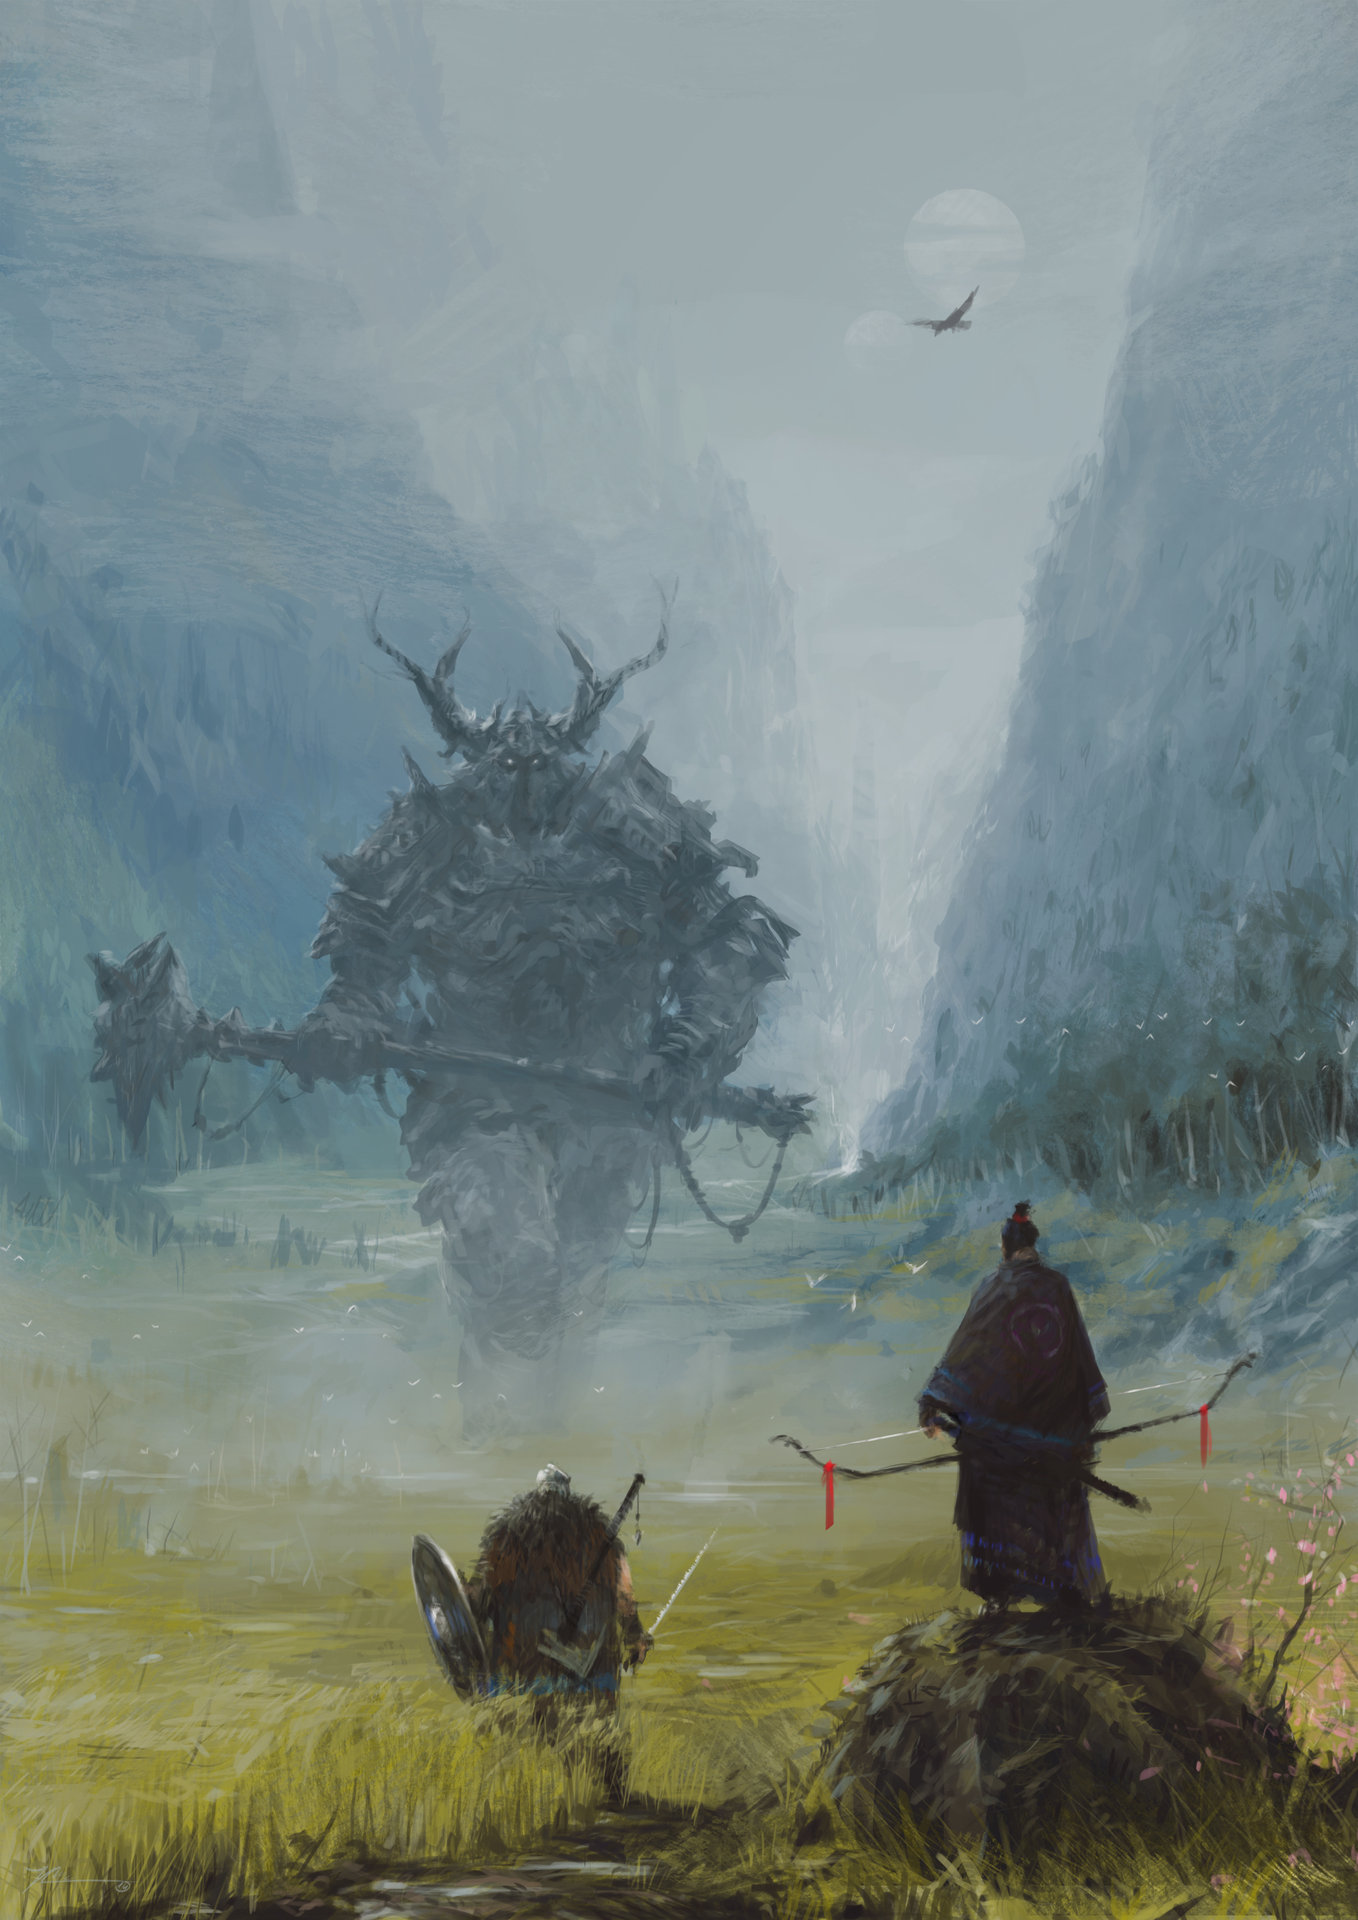 brothers in arms – meeting with a warlord, Jakub Rozalski_01